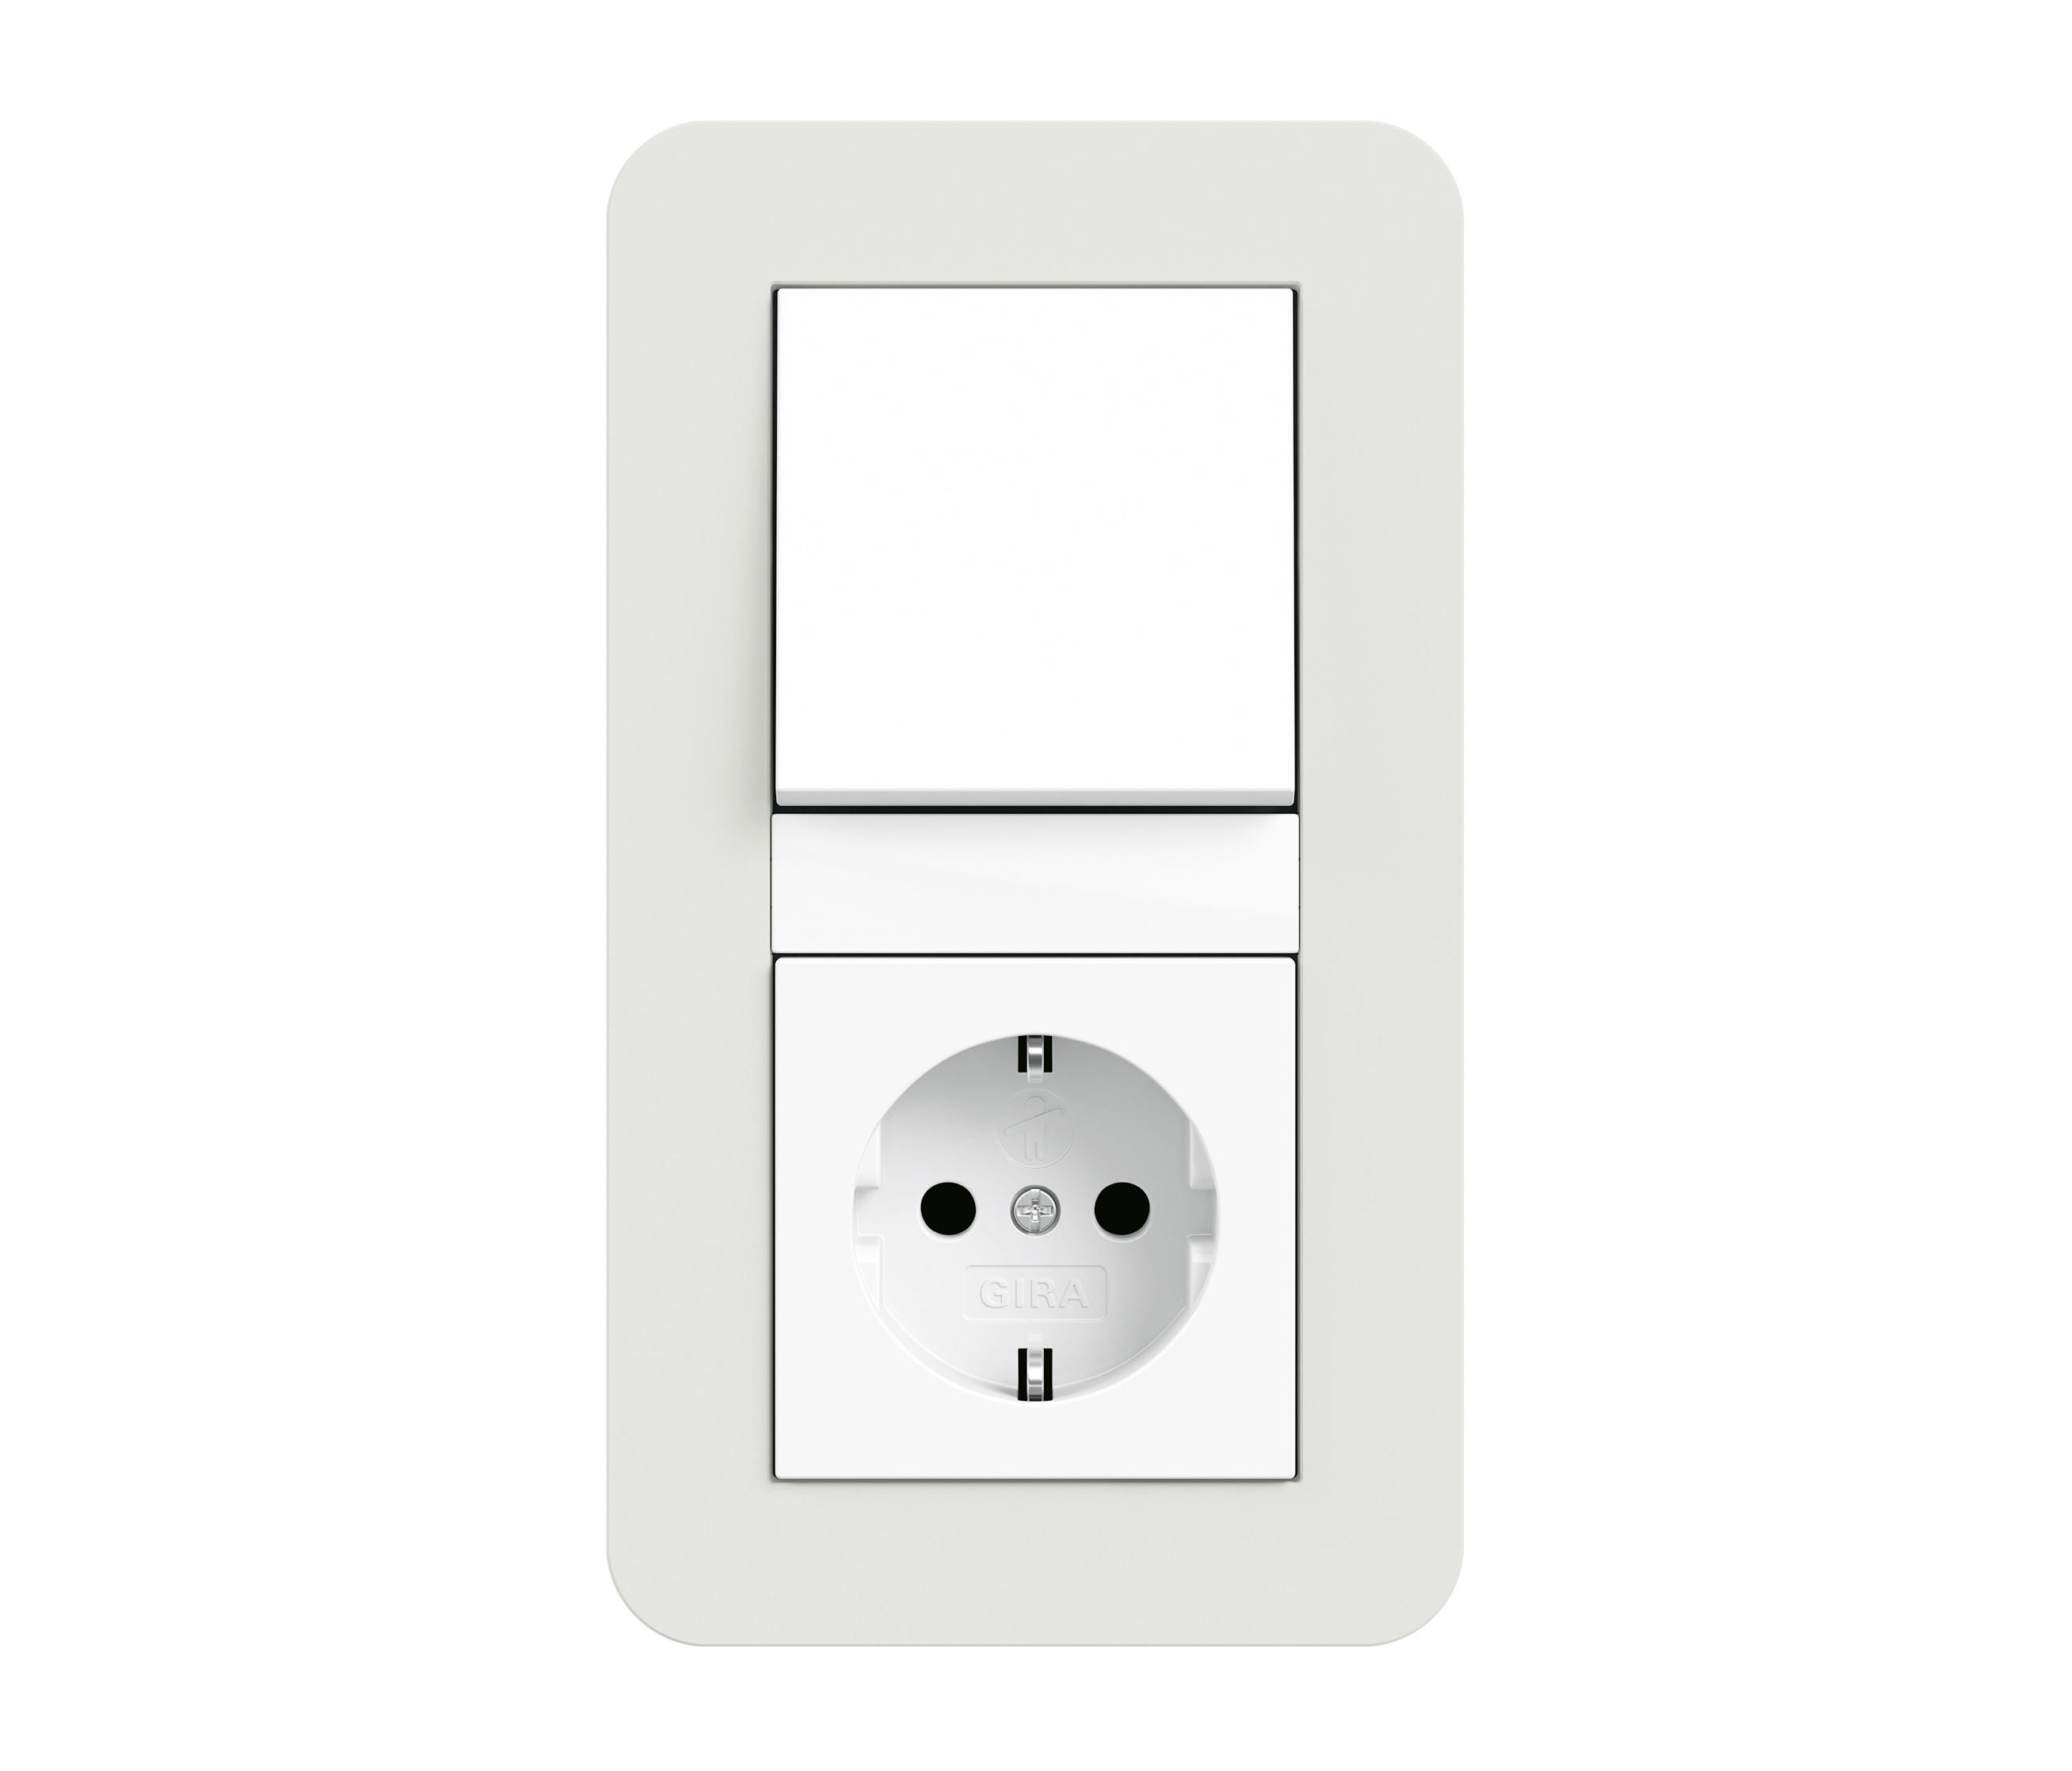 Design features of outlets and switches Gira (Gira) 34